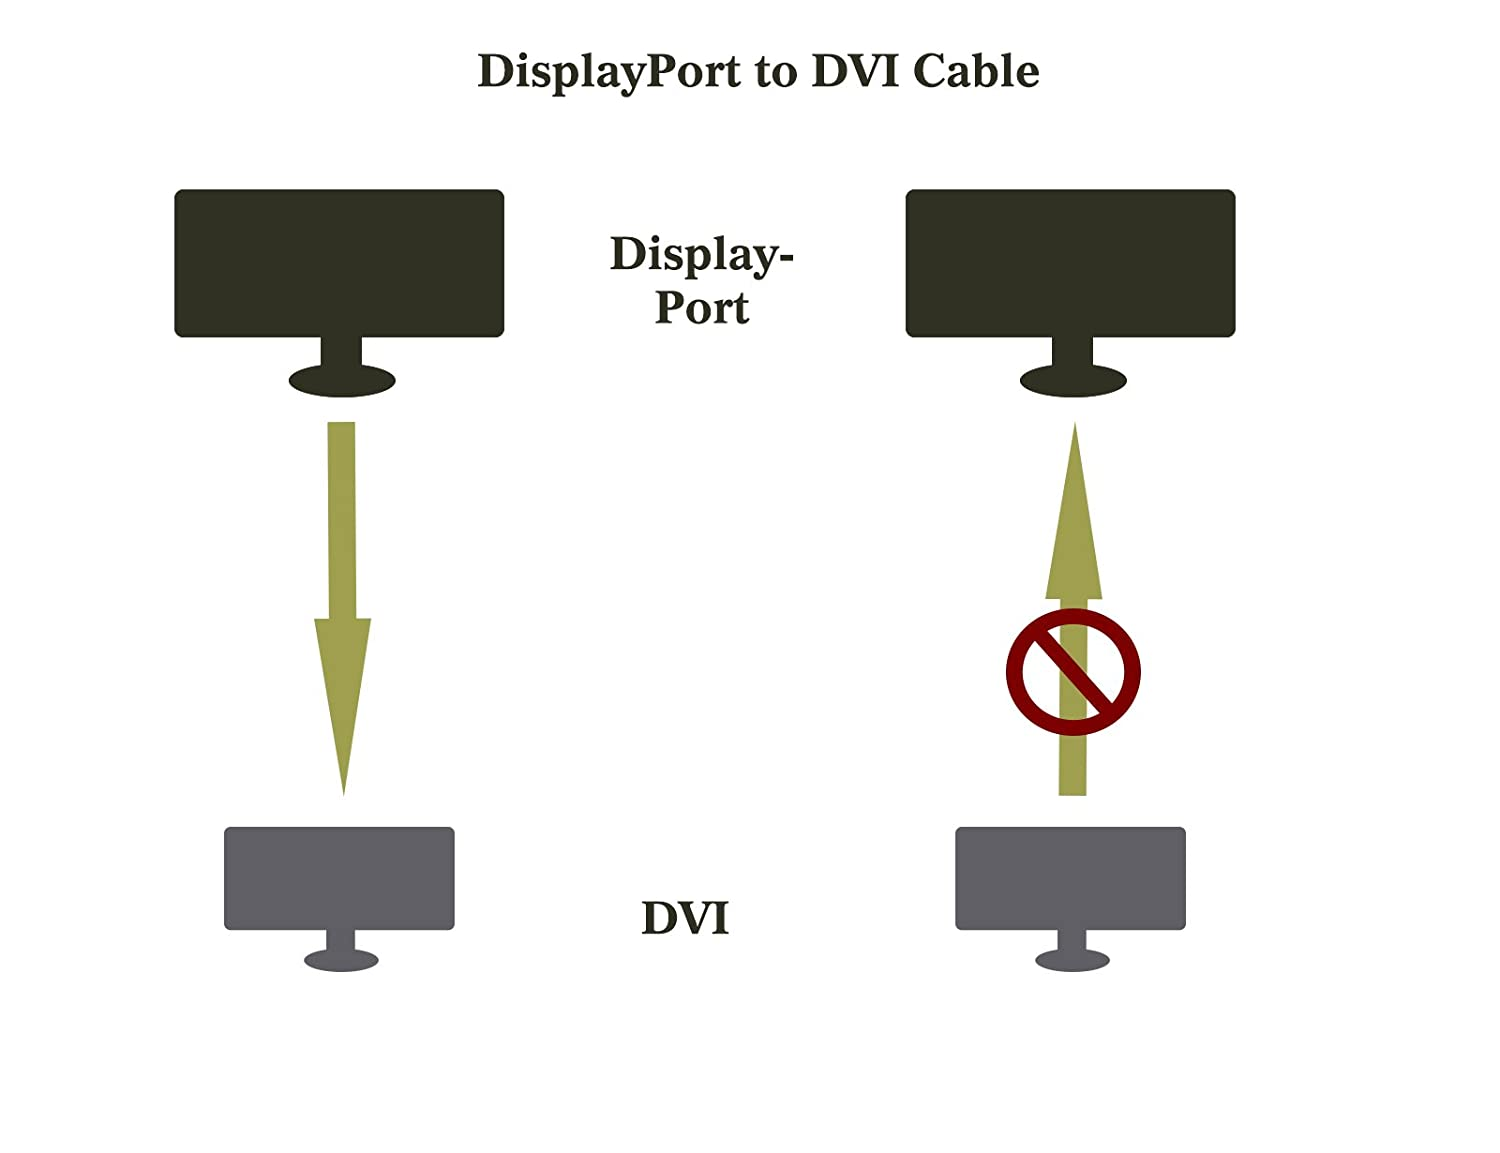 Dell ASUS and other brand HP Display Port to DVI Adapter Male to Male Gold-Plated Cord for Lenovo Benfei DisplayPort to DVI DVI-D Single Link 1.8M Cable